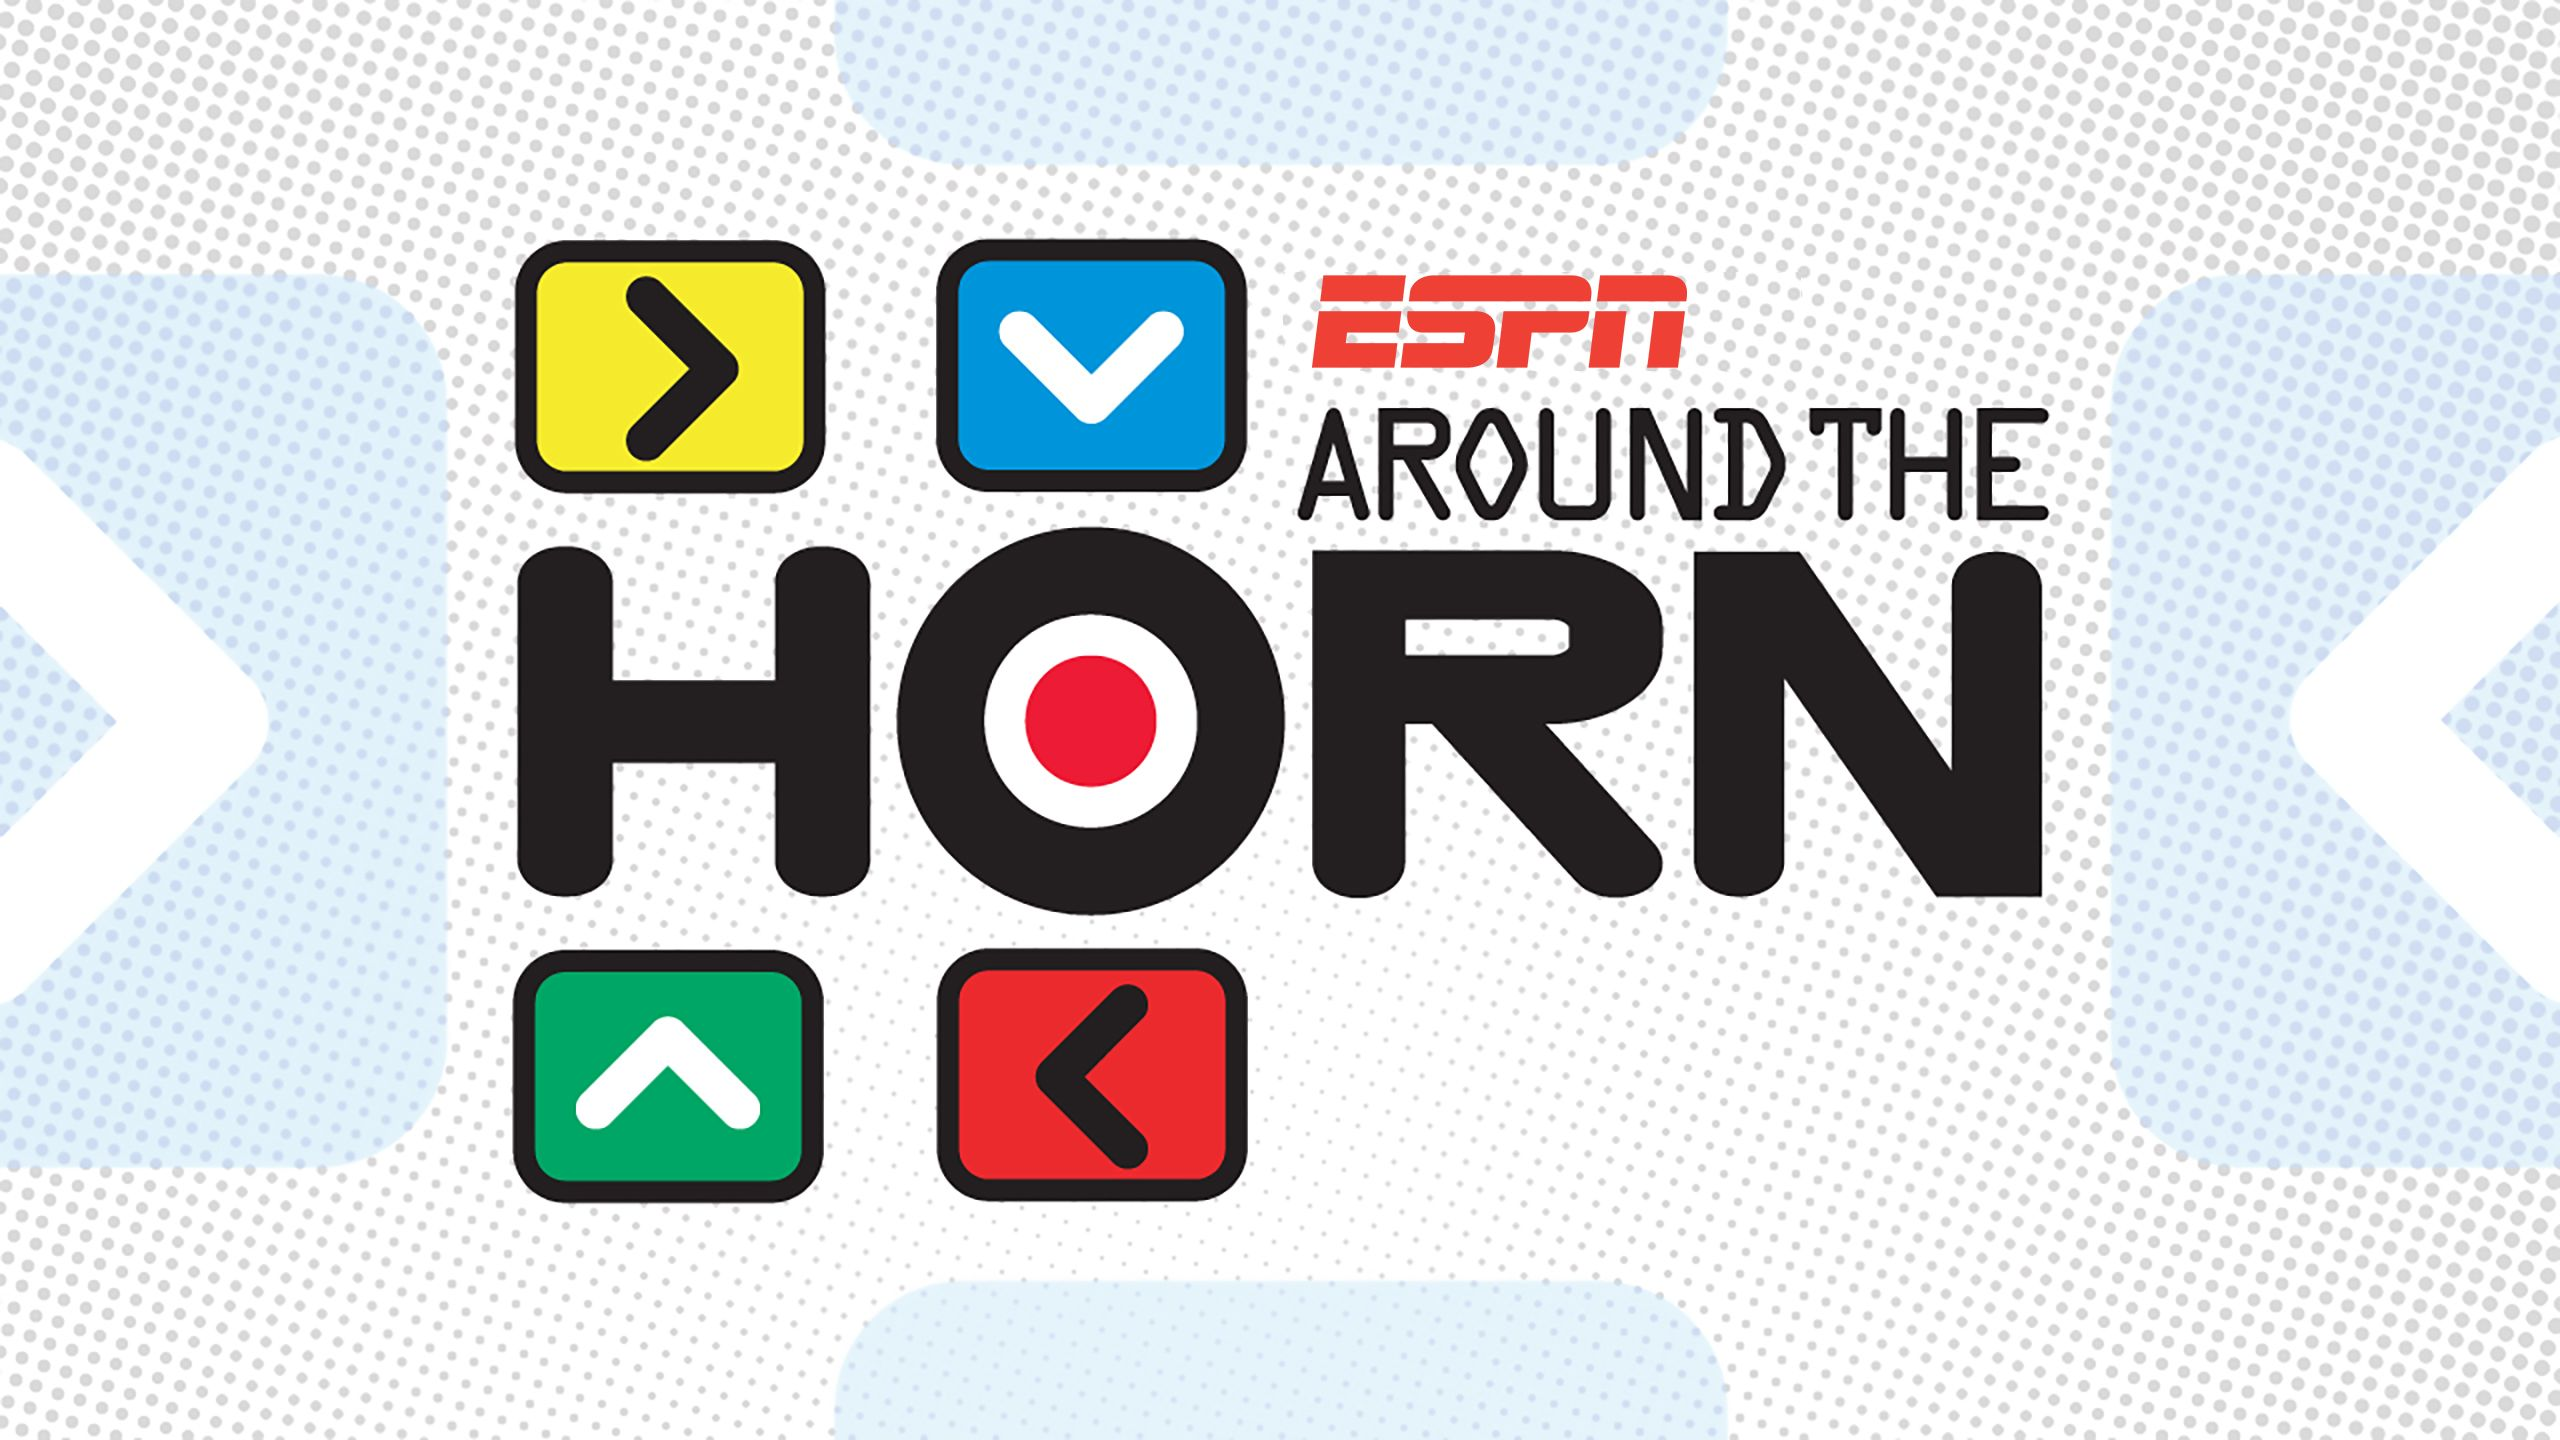 Mon, 3/19 - Around The Horn